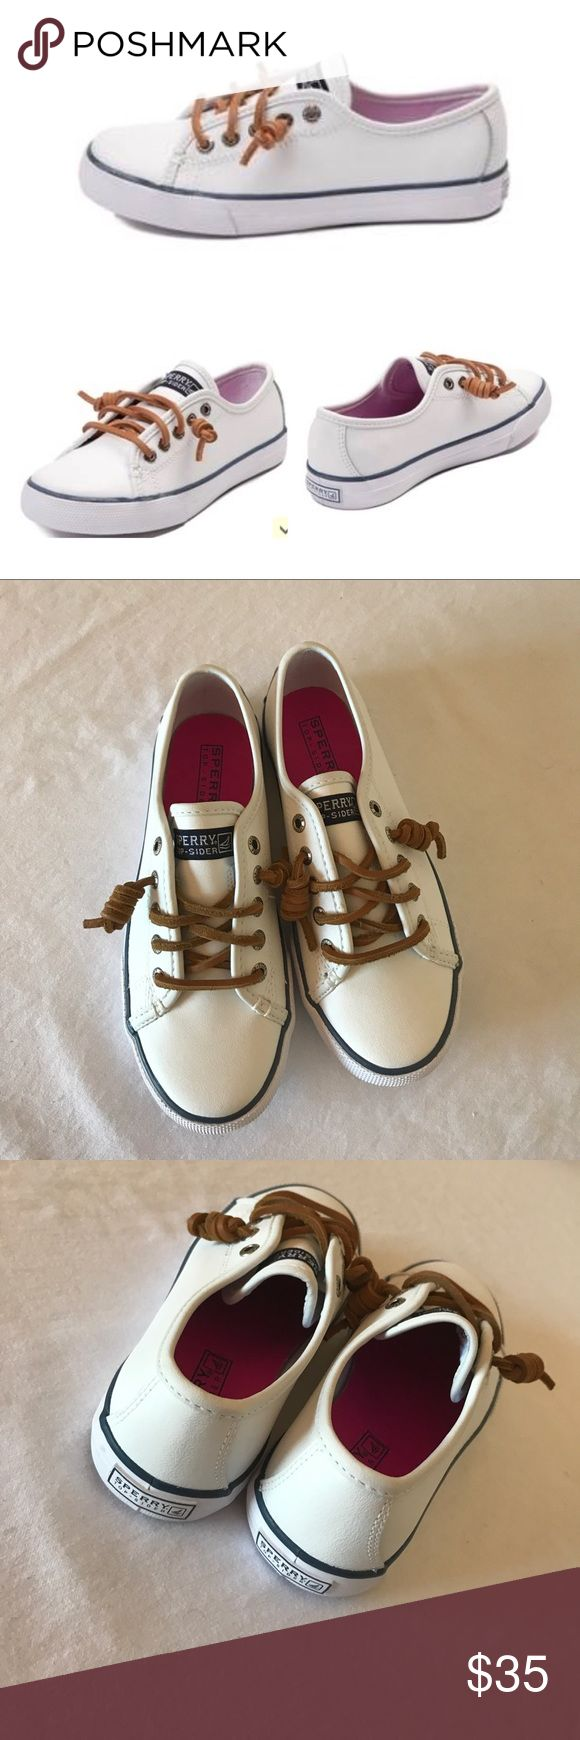 Sperry, nwob, size 1, kids seacoast sneaker, white The perfect kids, slip-on shoe.. sperrys, seacoast sneaker, nwob, size 1, 🚫no trades. Runs true to size.Add a touch of style to an otherwise laid back look in the new Sperry Seacoast sneaker. Just like mom's, these casual cool sneakers are perfect for almost any occasion. Leather or textile upper Gore for easy on/off Authentic boat shoe styling Sperry Shoes Sneakers